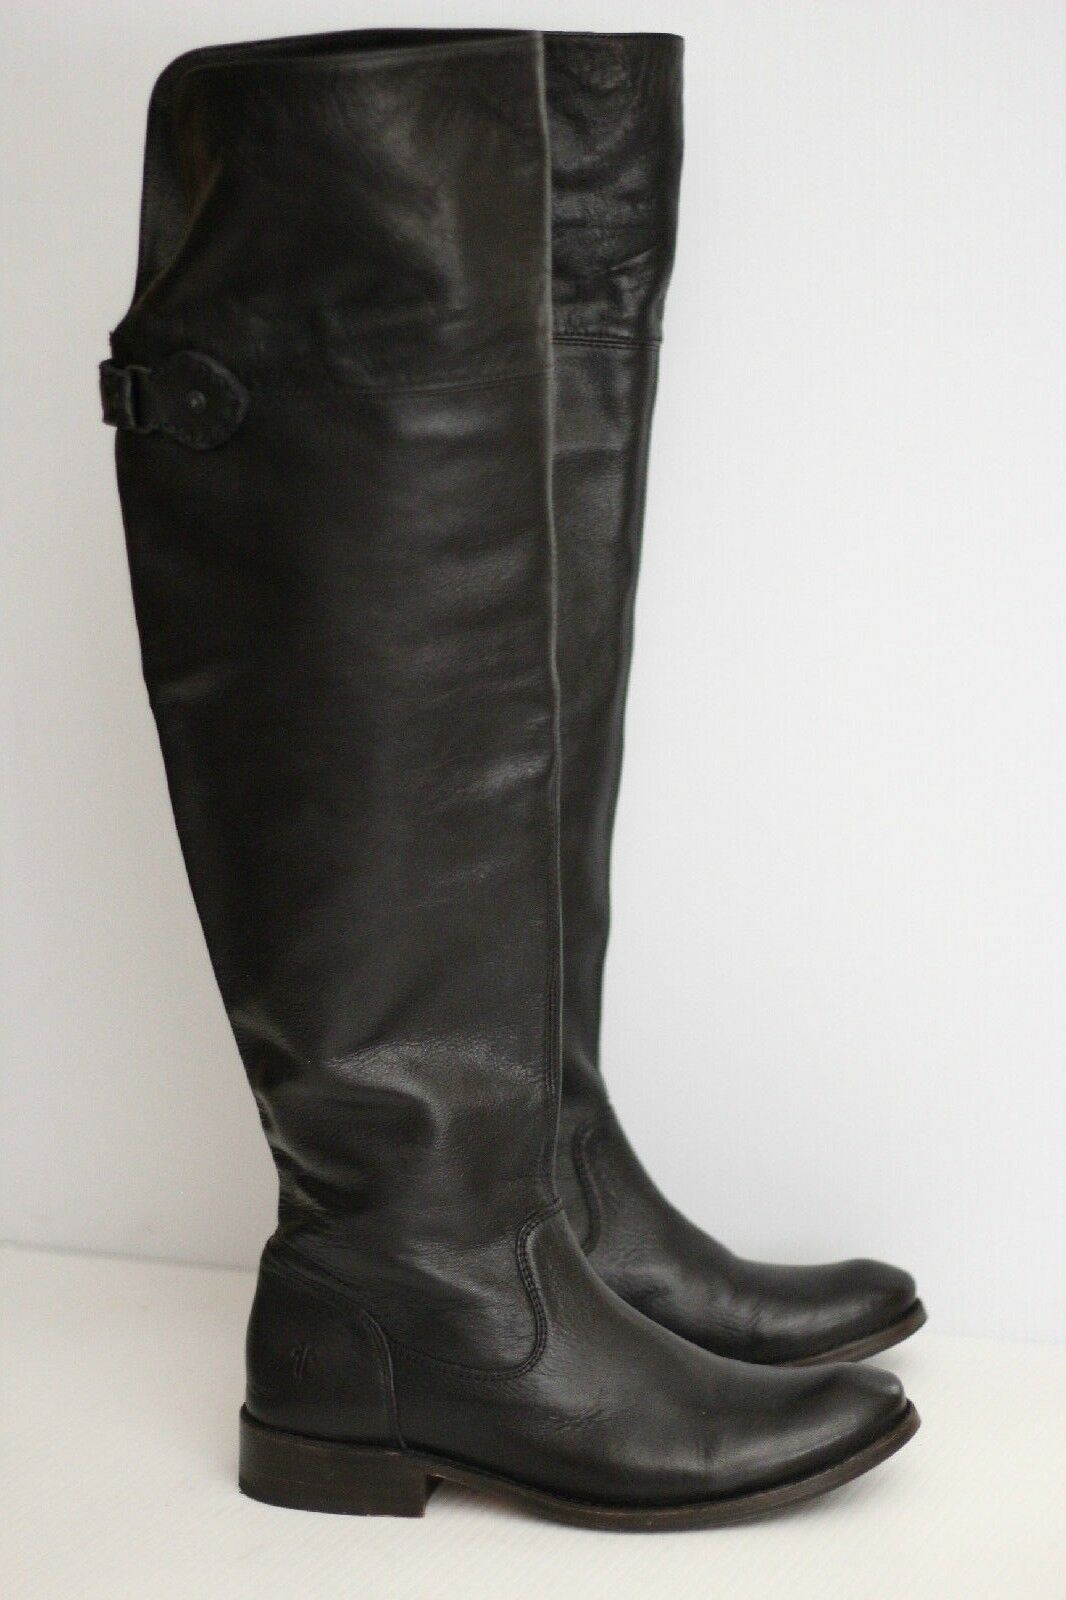 Frye Shirley OTK Over The Knee Tall Riding Boots - Black - Size 7 B - 3477739